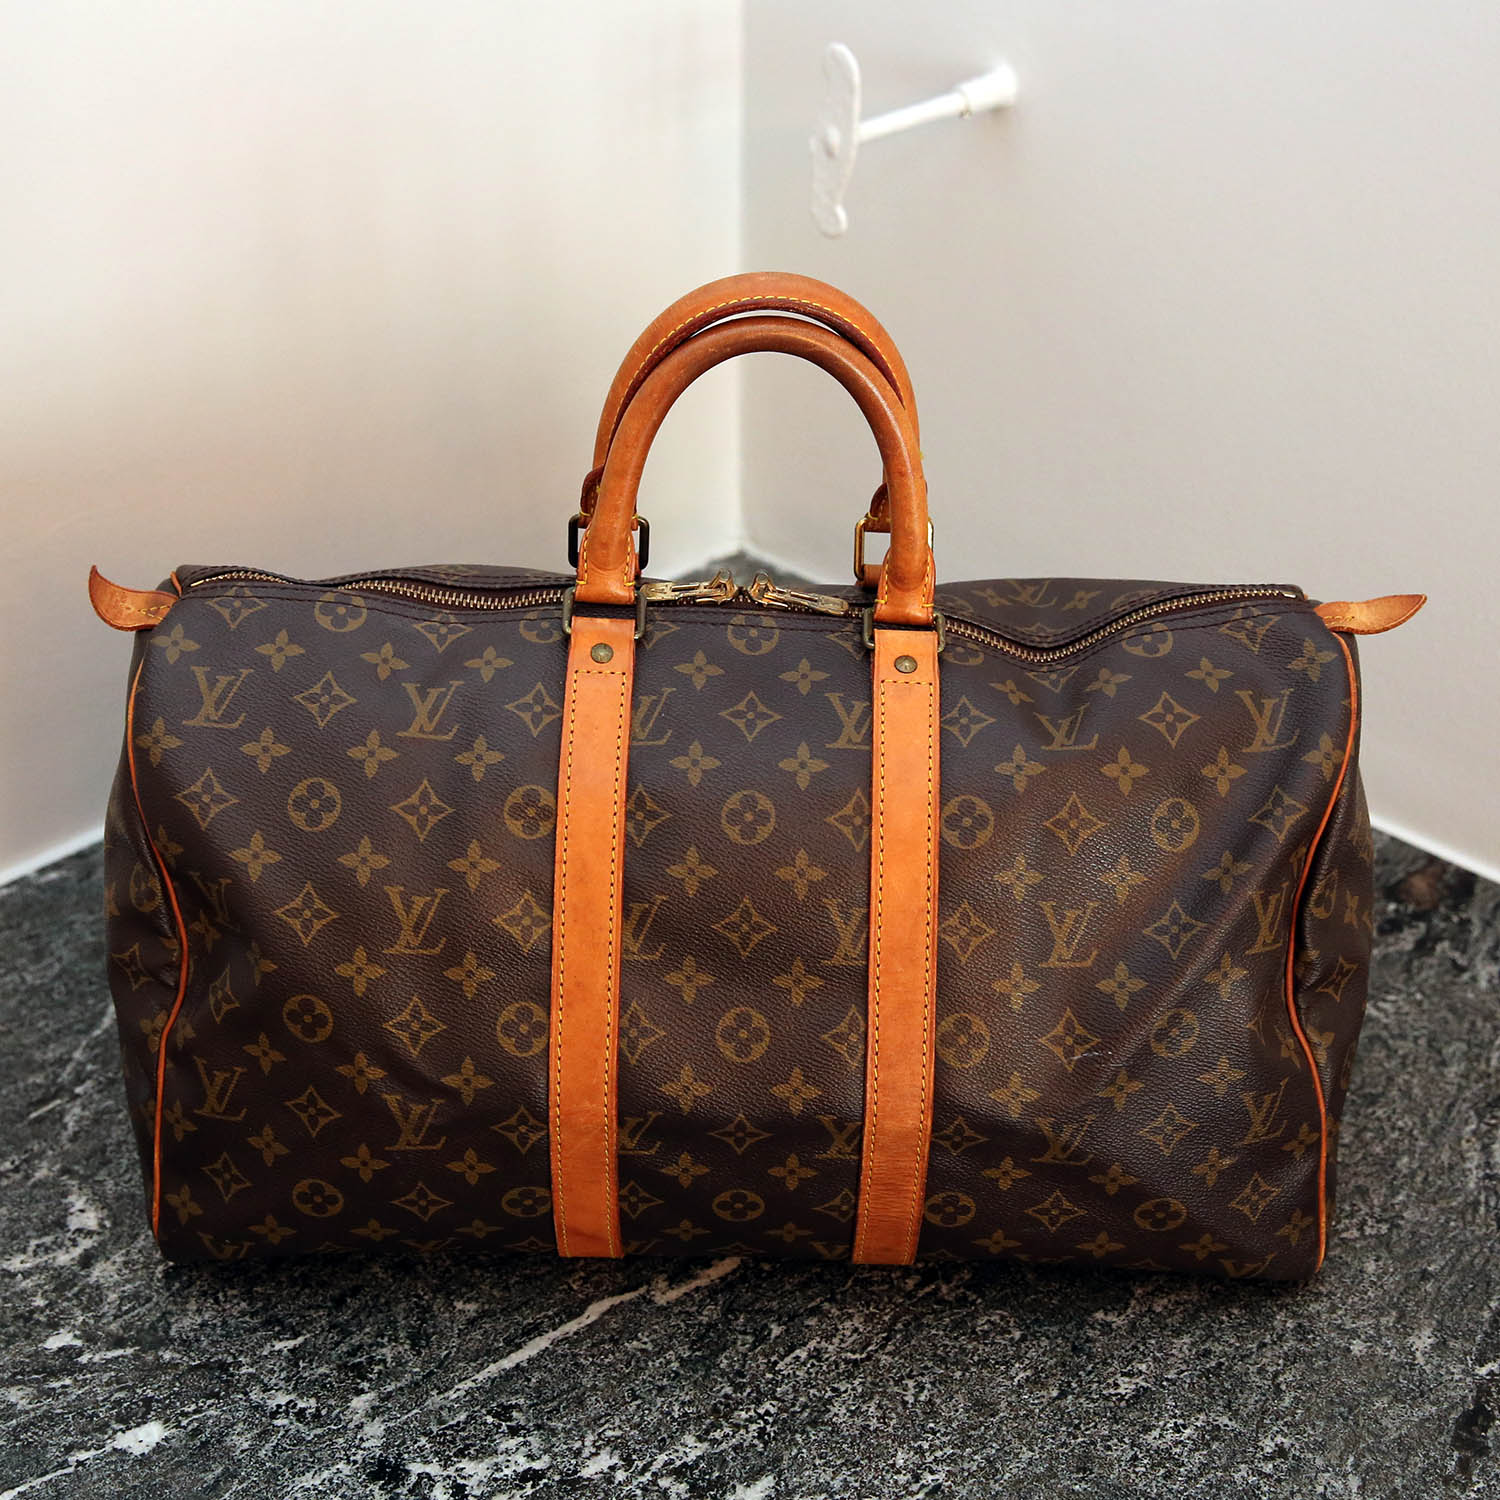 louis vuitton keepall 45 pre owned louis vuitton and other luxury brands. Black Bedroom Furniture Sets. Home Design Ideas